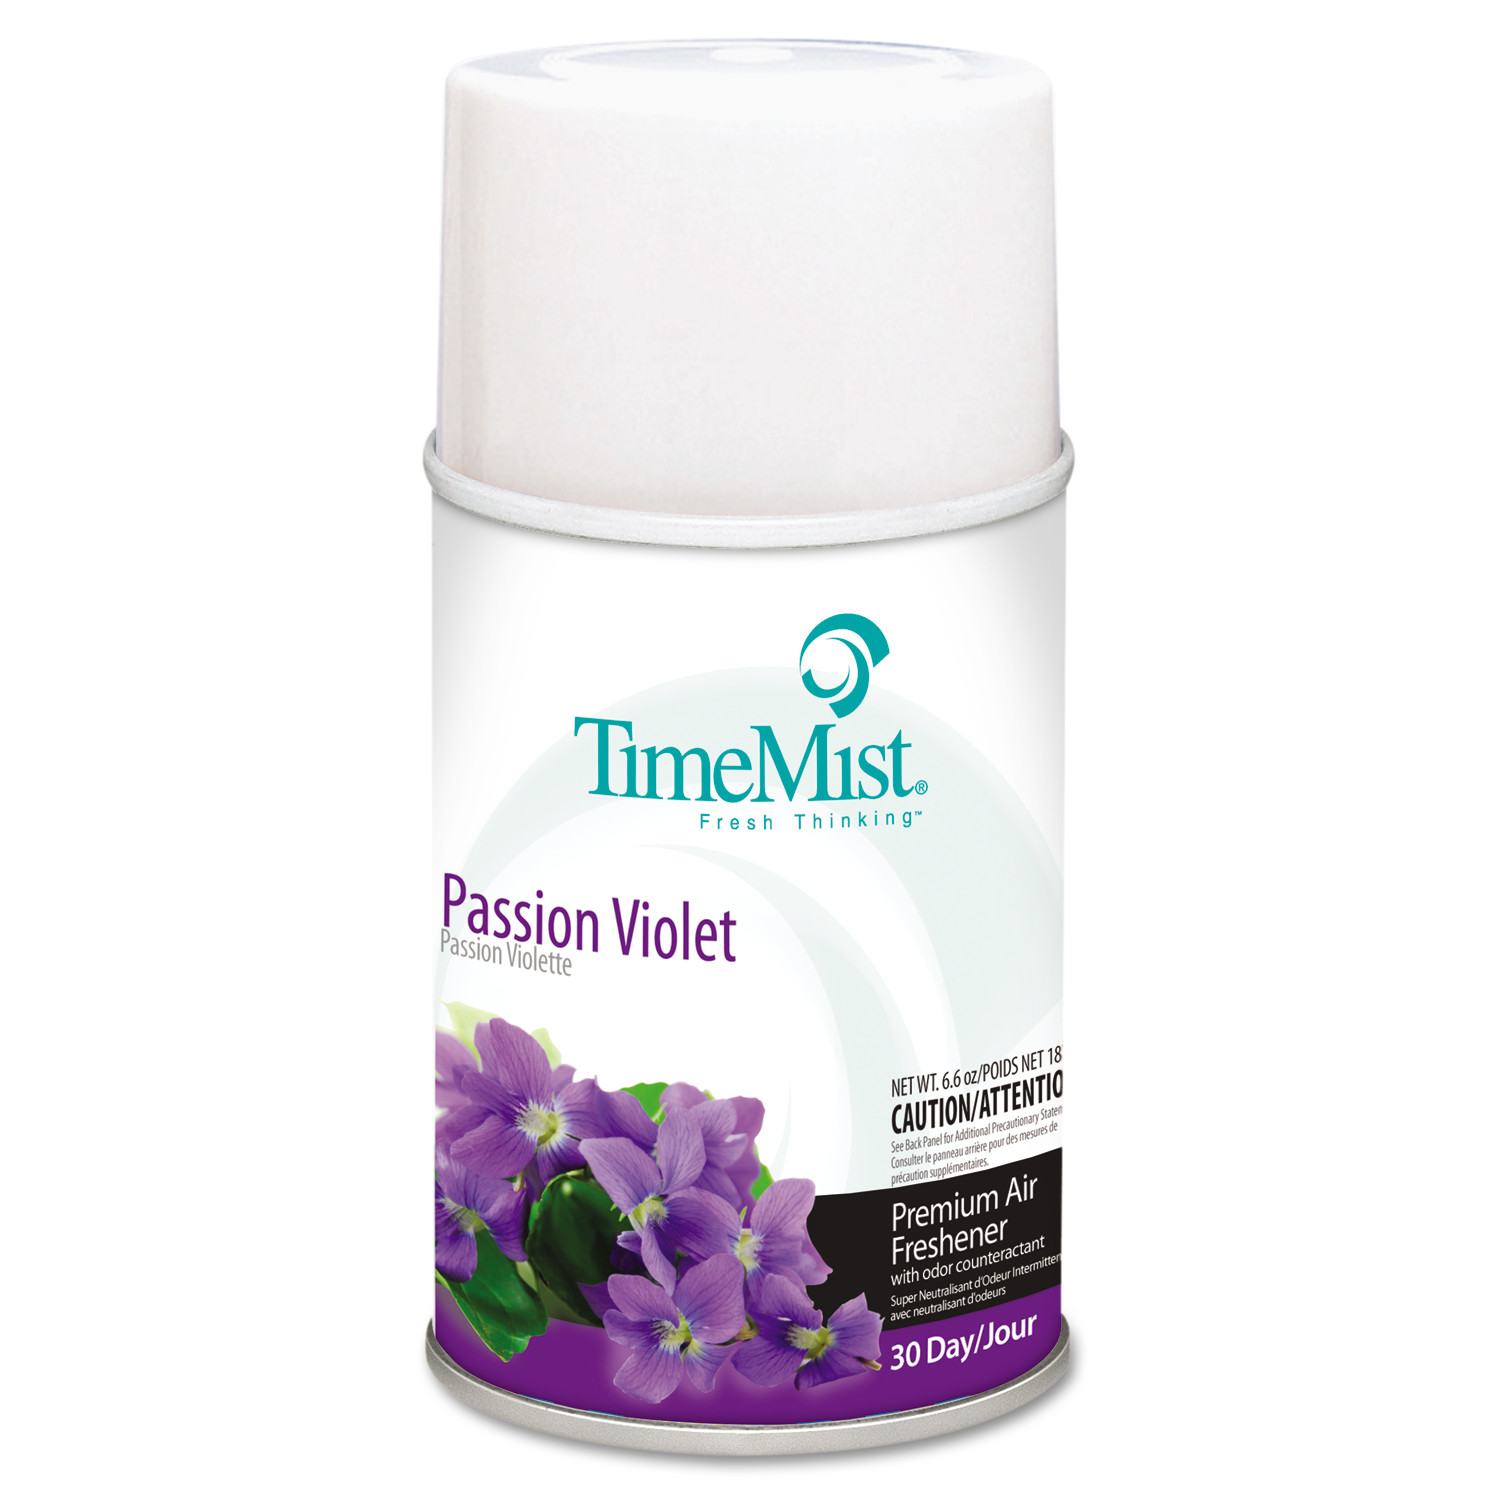 TimeMist Metered Fragrance Dispenser Refills, Passion Violet, 6.6 oz, 12/Carton